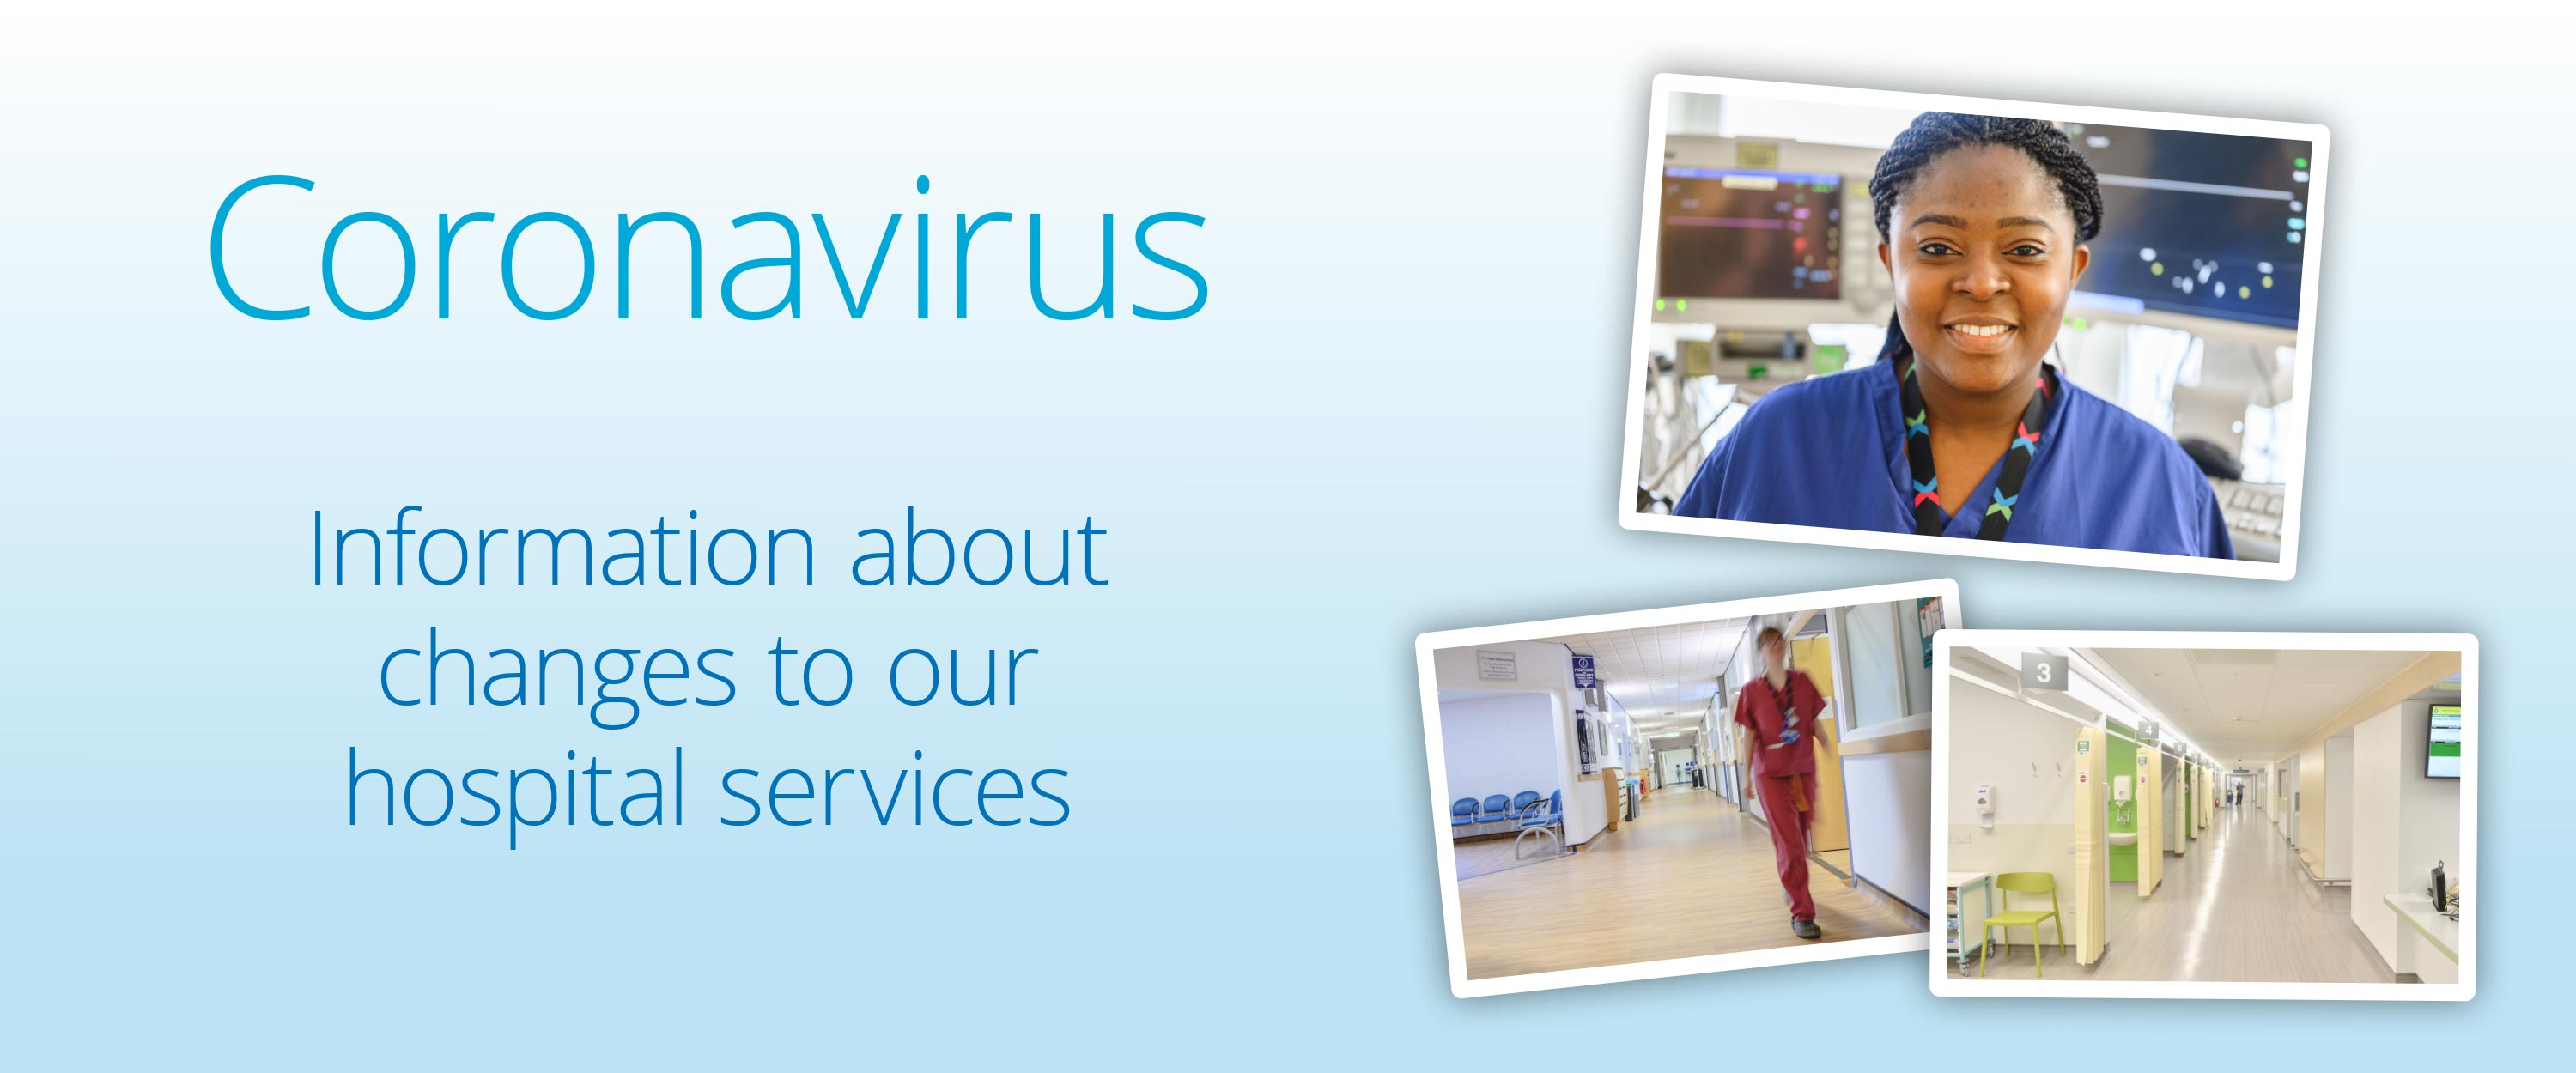 Coronavirus—our hospitals and services